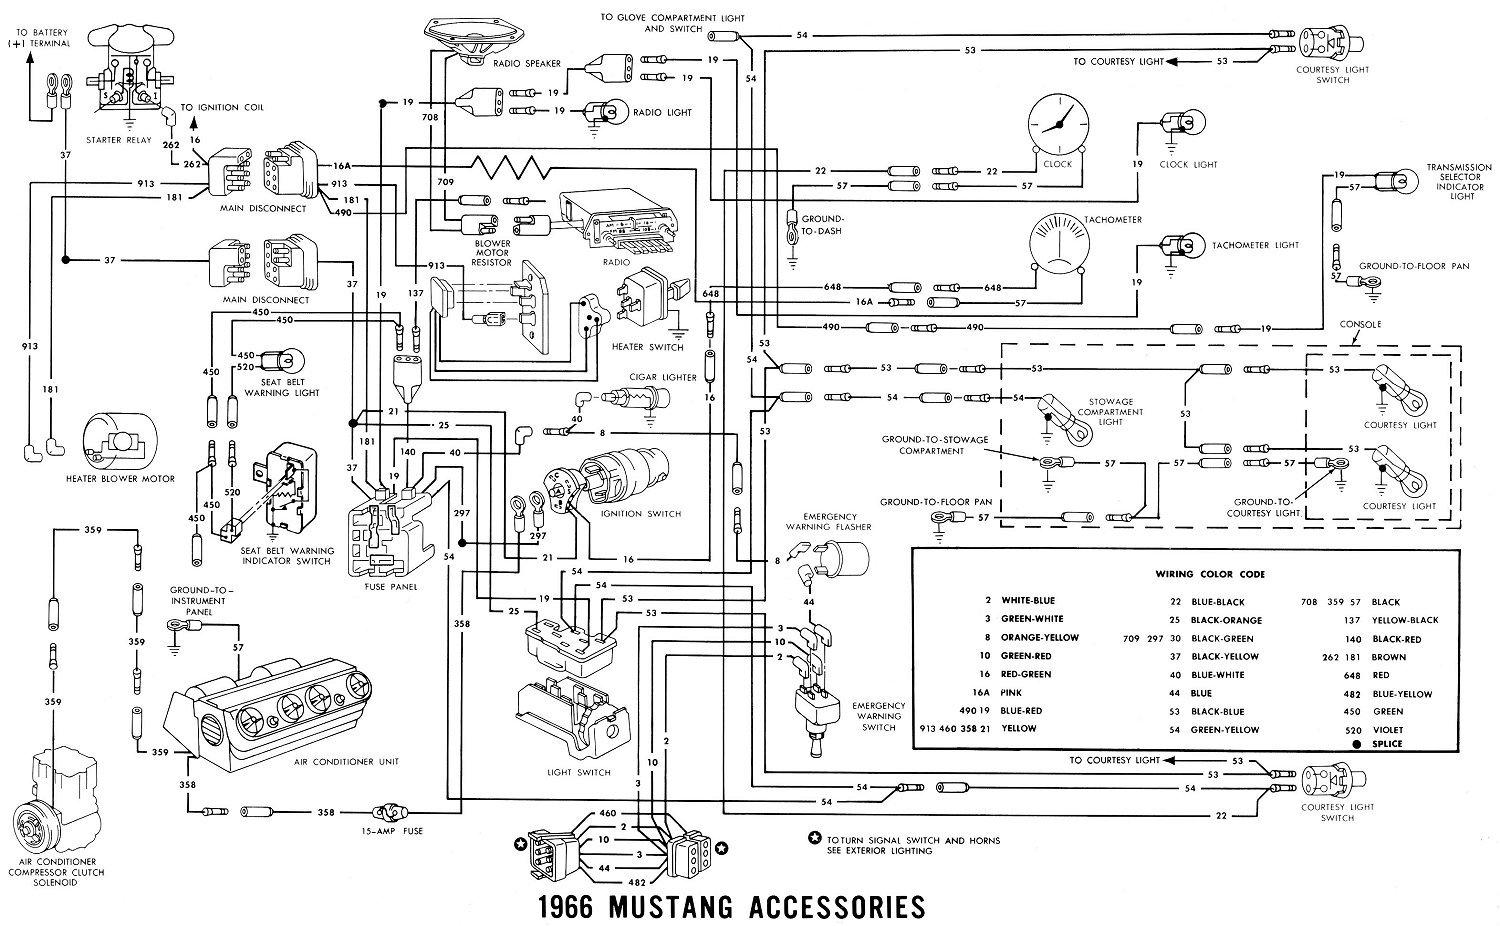 1964 ford mustang headlight wiring diagram - wiring diagram schematic  lease-total-a - lease-total-a.aliceviola.it  aliceviola.it